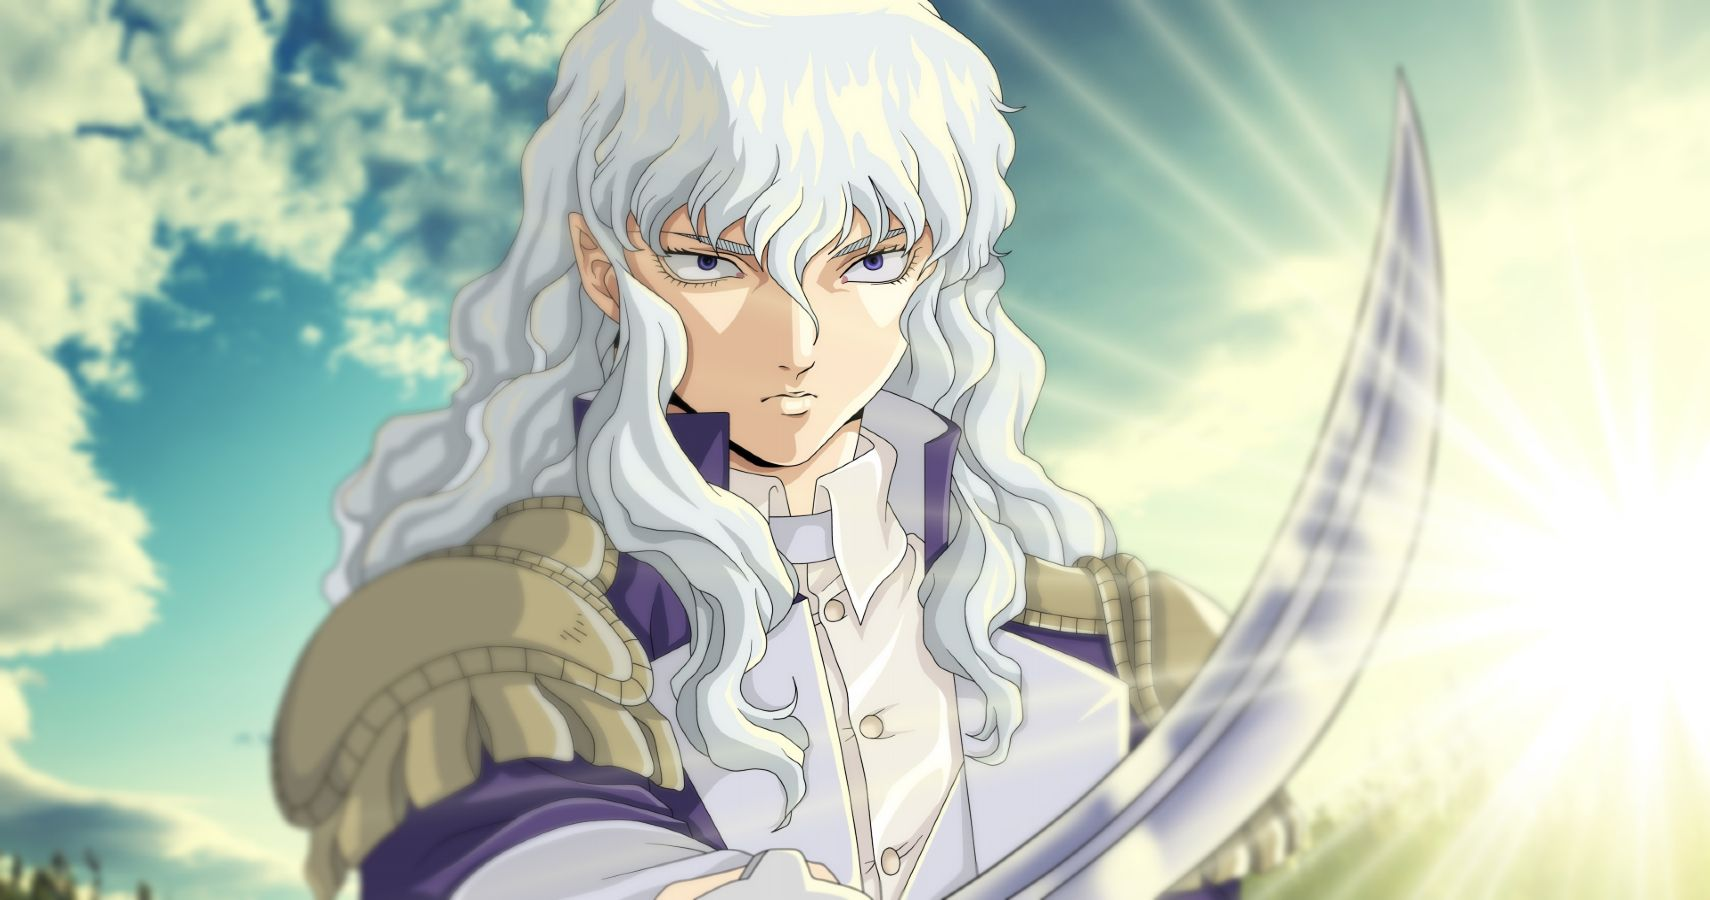 Berserk-Griffith.jpg